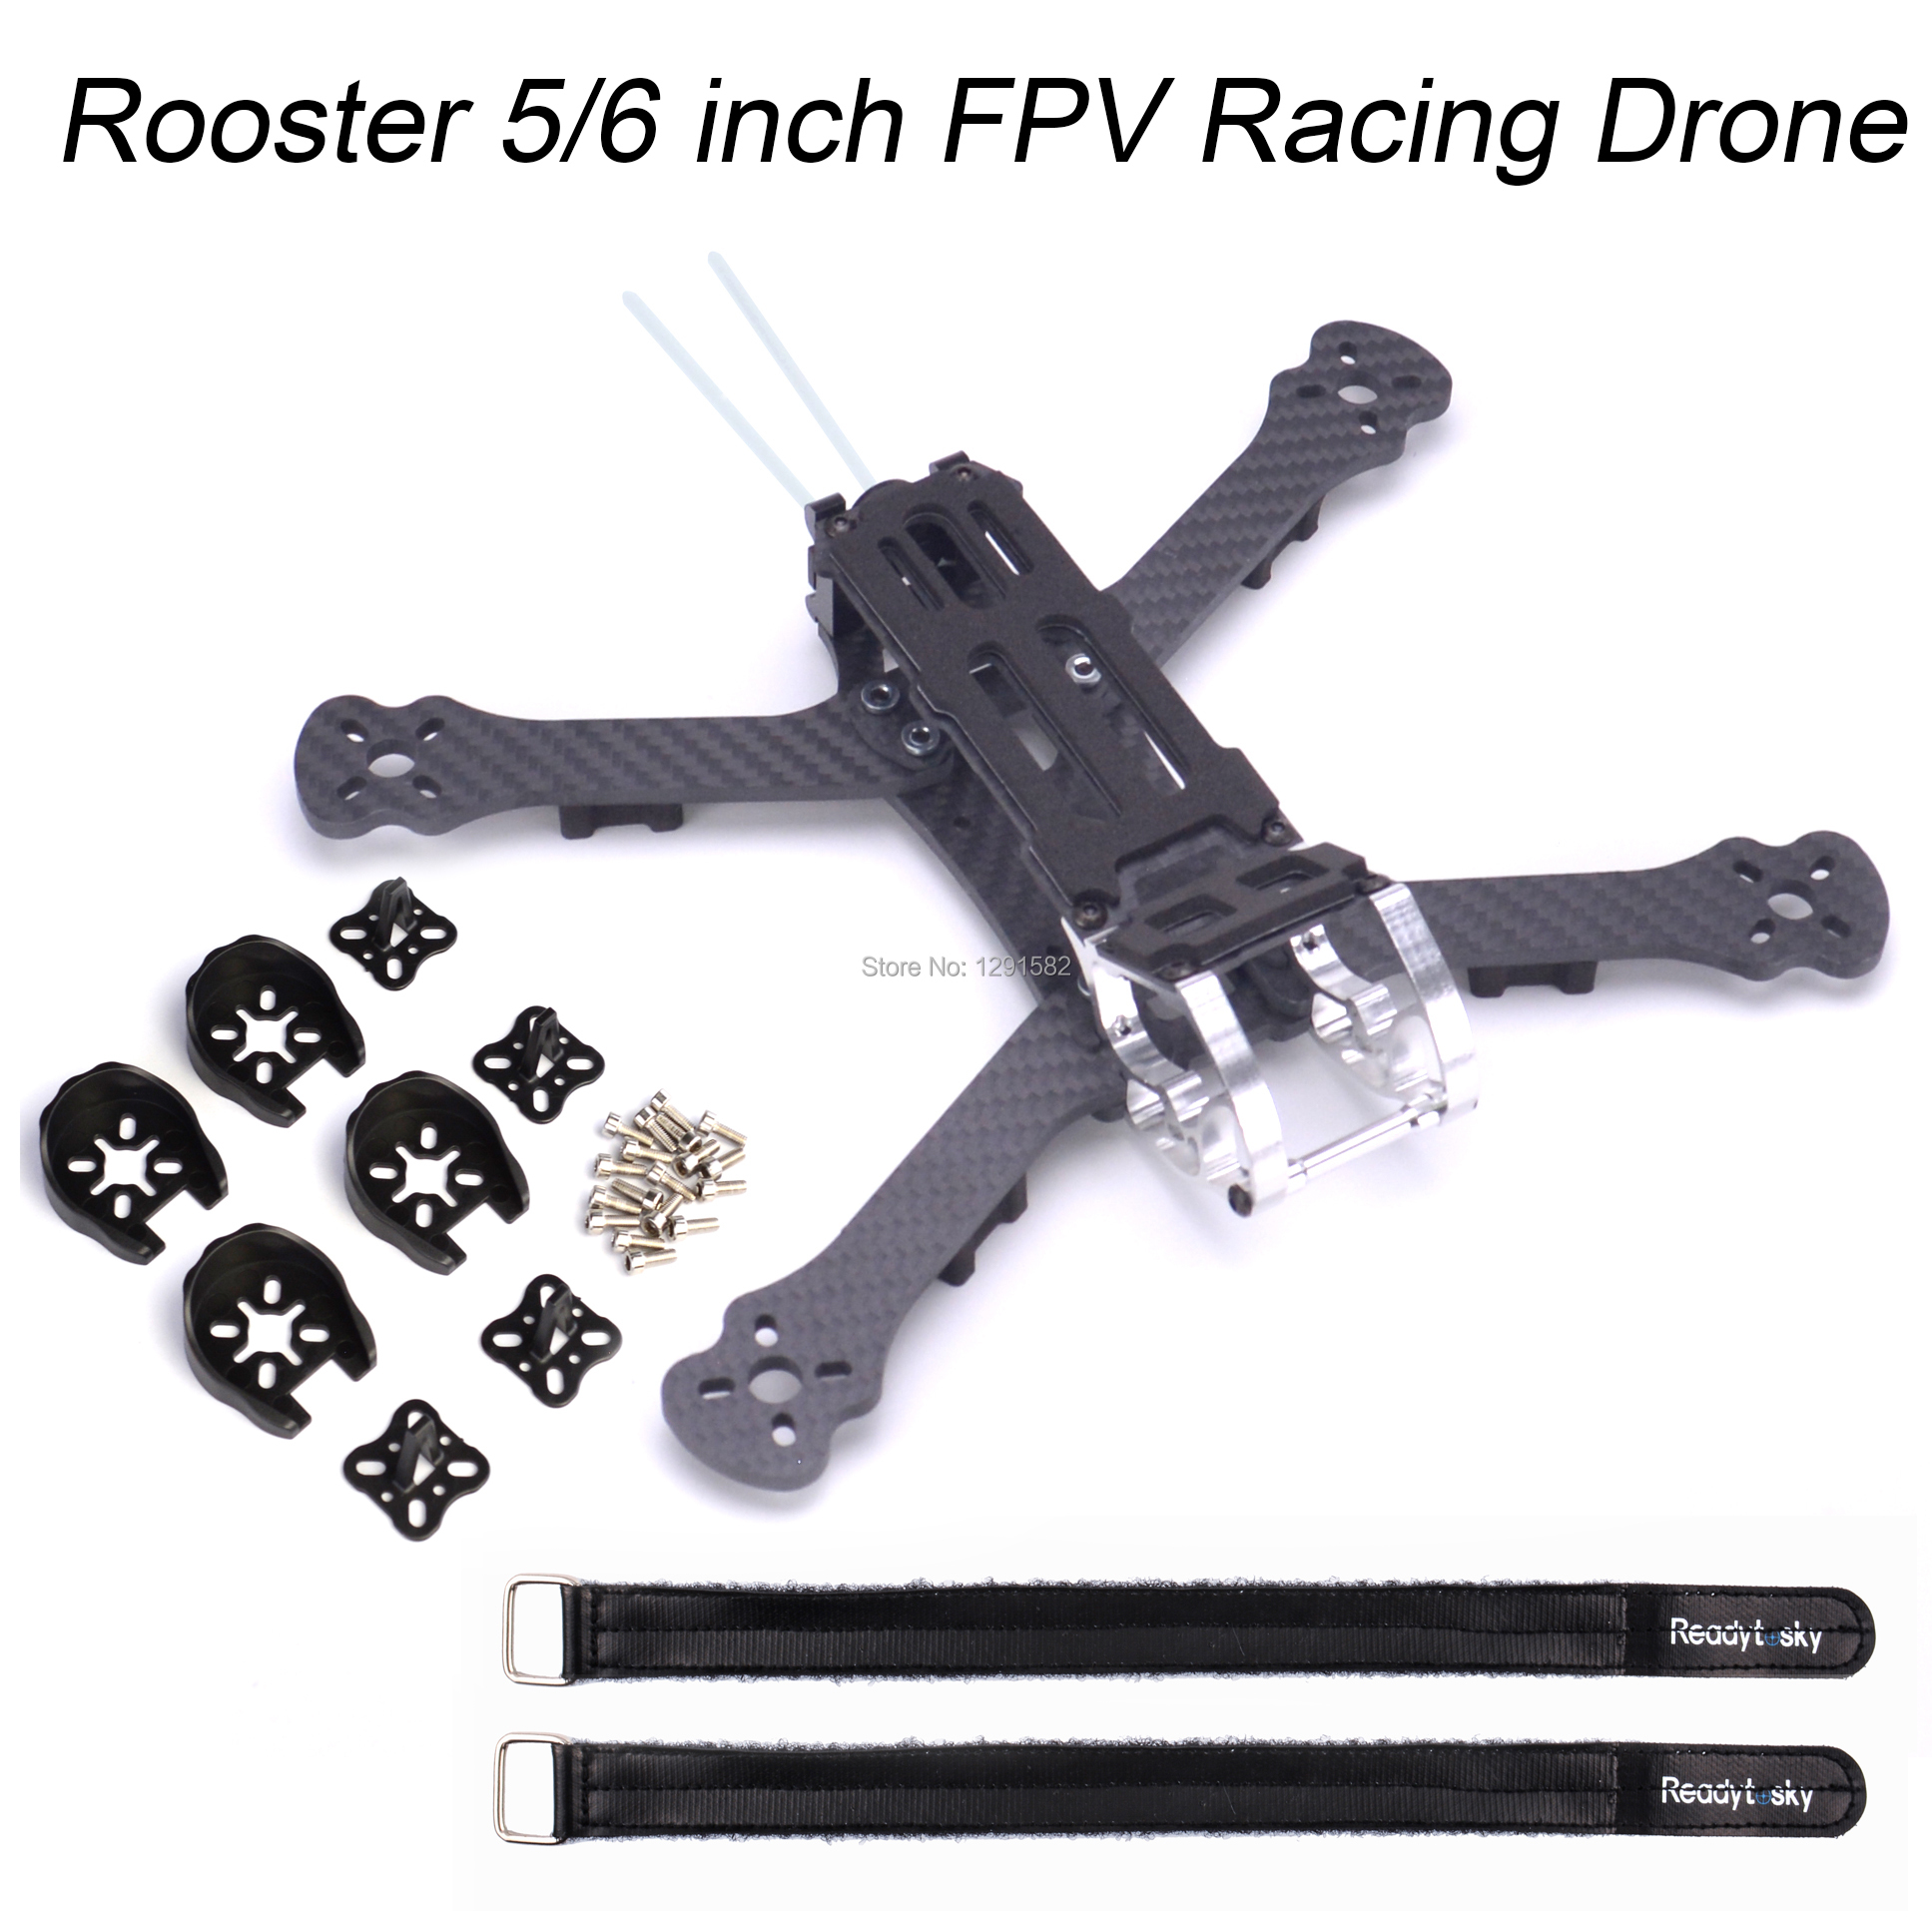 Rooster 230 225mm / 255mm FPV Racing Drone Quadcopter Frame 5 / 6 Inch FPV Freestyle Frame With 4mm Arm For Chameleon 220mm